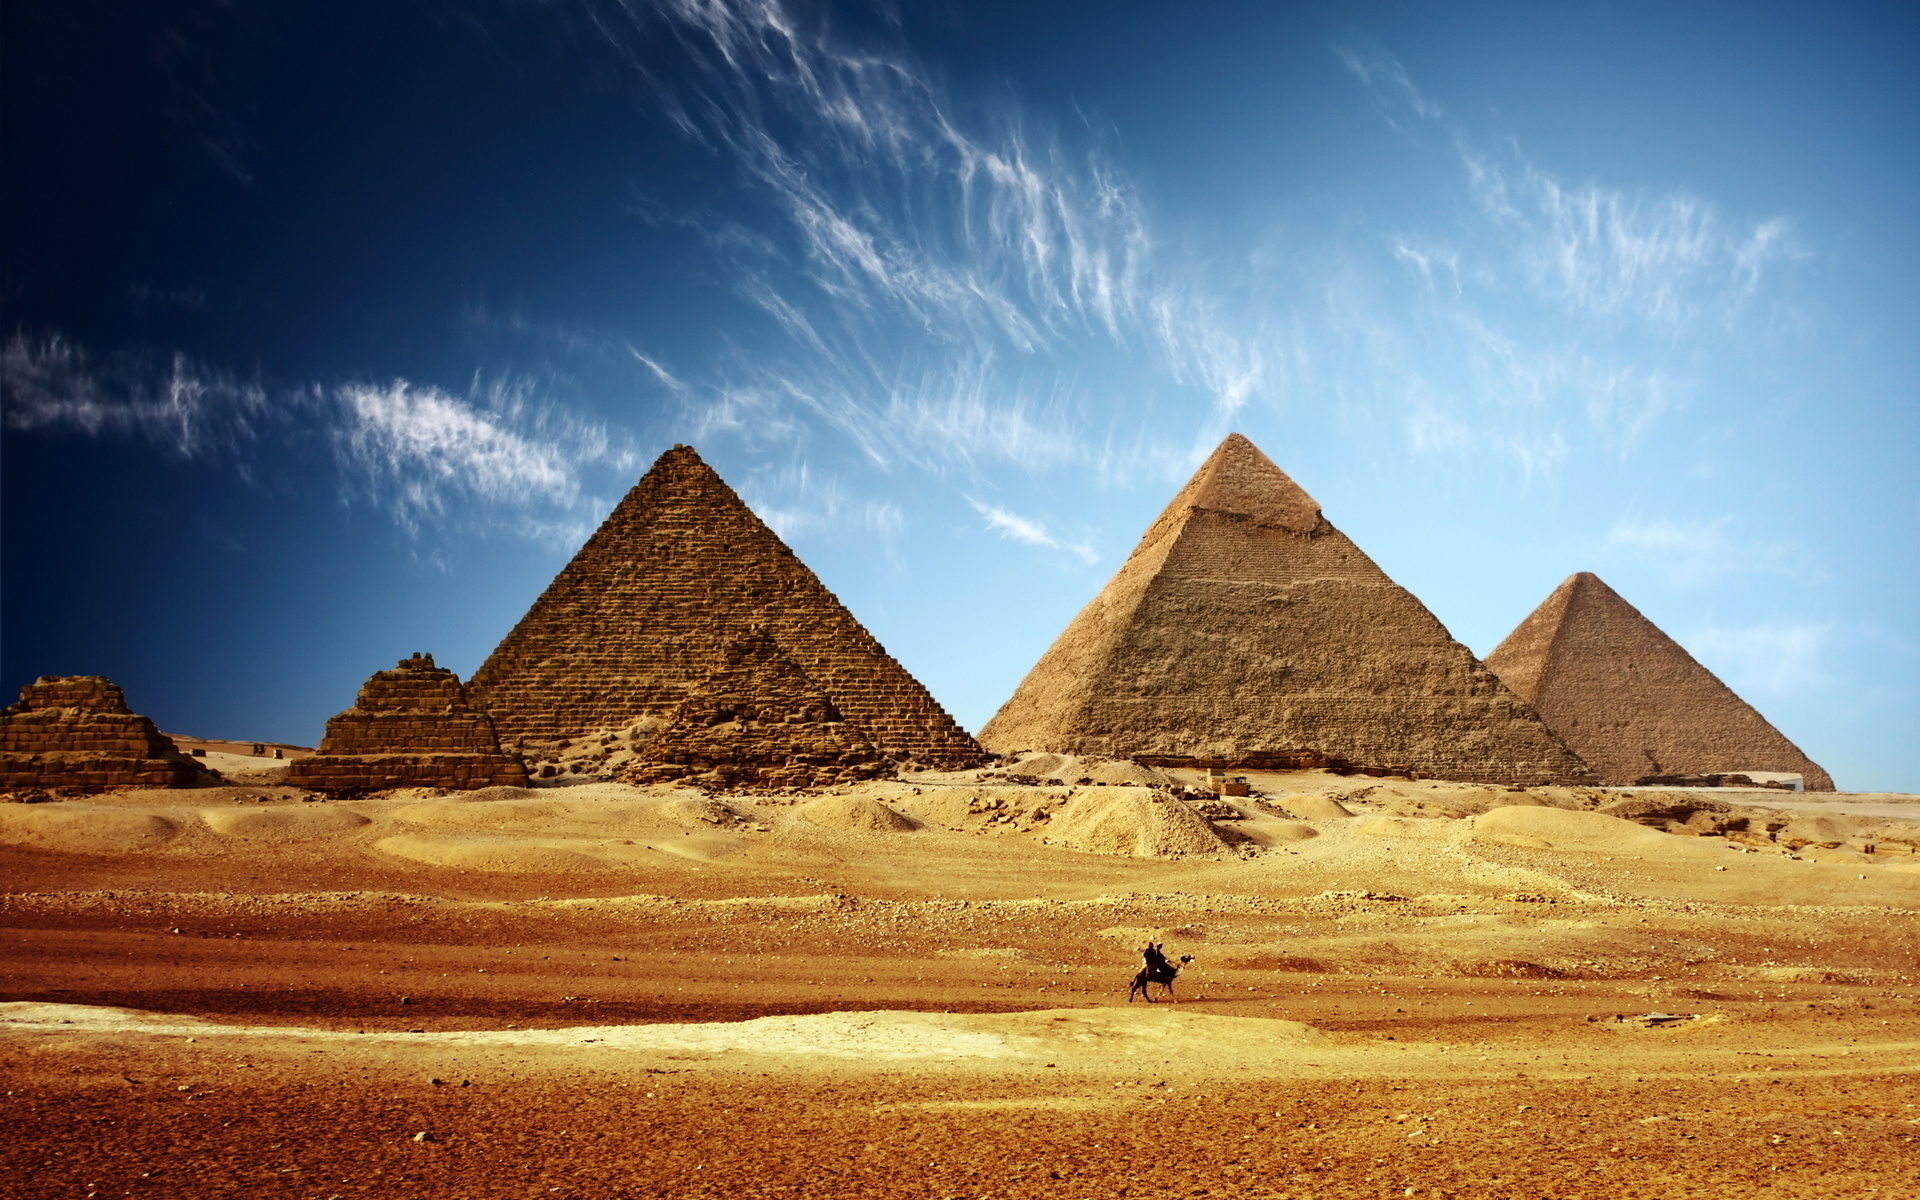 Great-pyramid-of-giza-wallpapers-in-hd